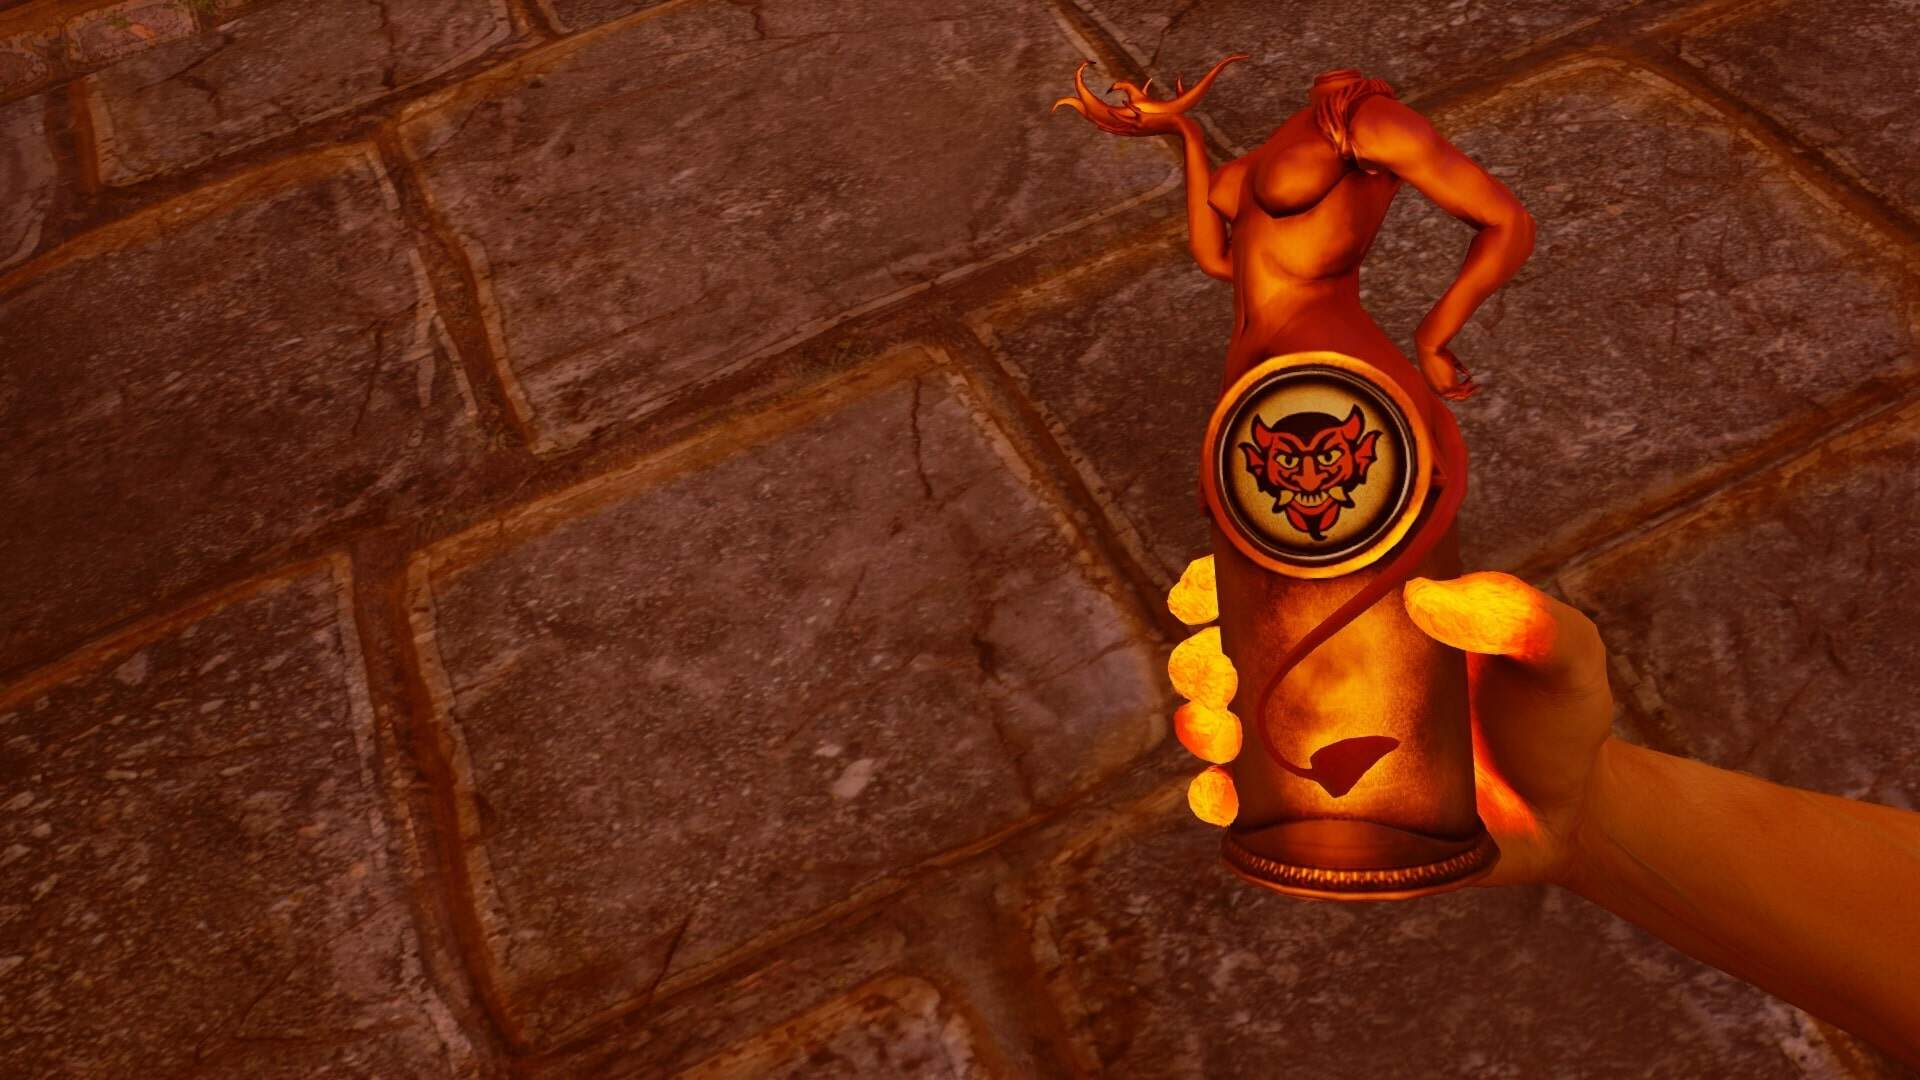 """Bioshock Infinite: How to Solve the """"Key to Chest"""" Puzzle"""